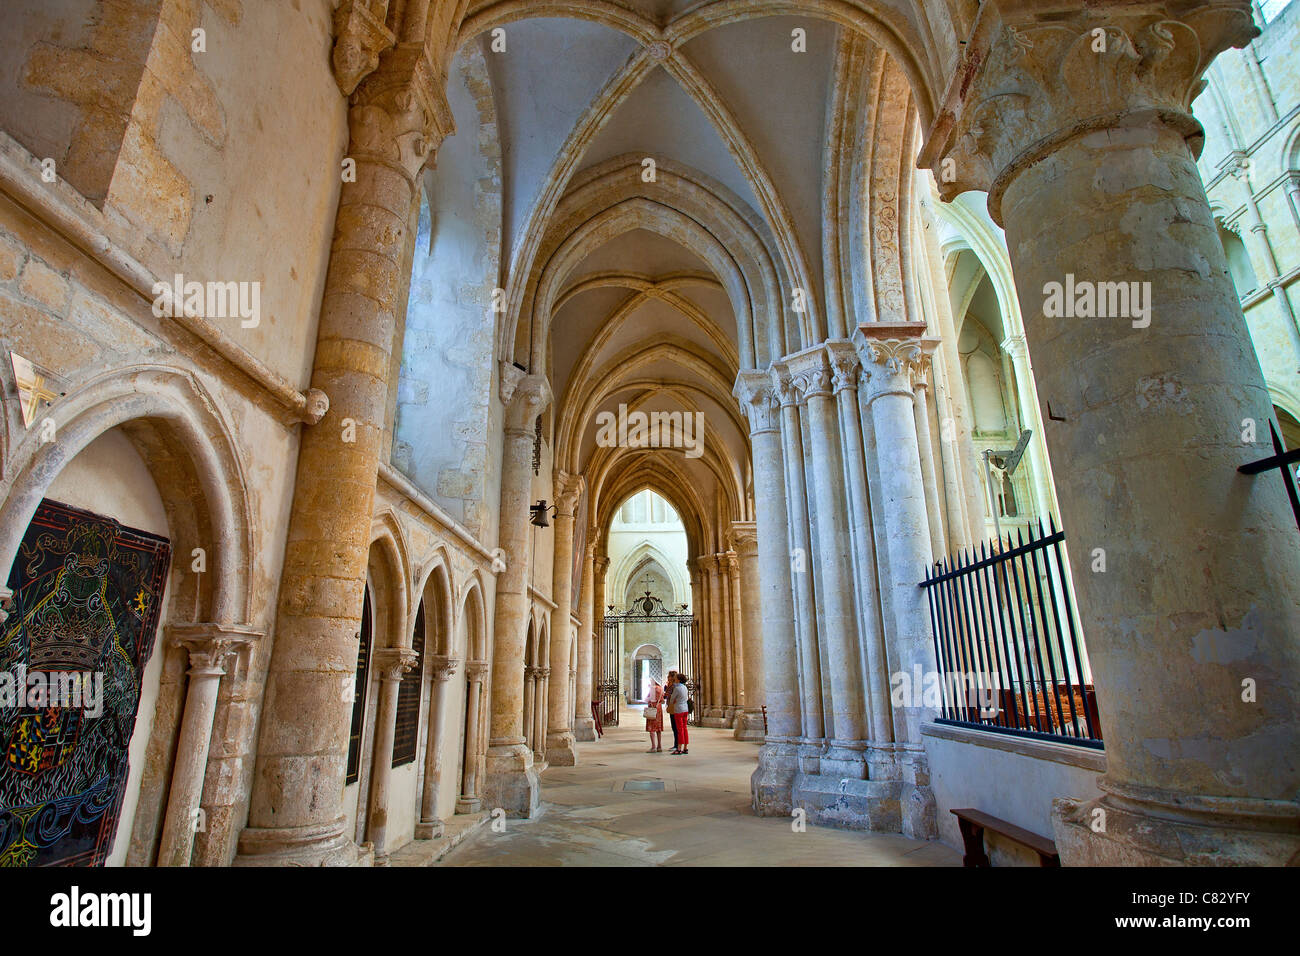 France, Provins, Saint Quiriace Collegiate church - Stock Image